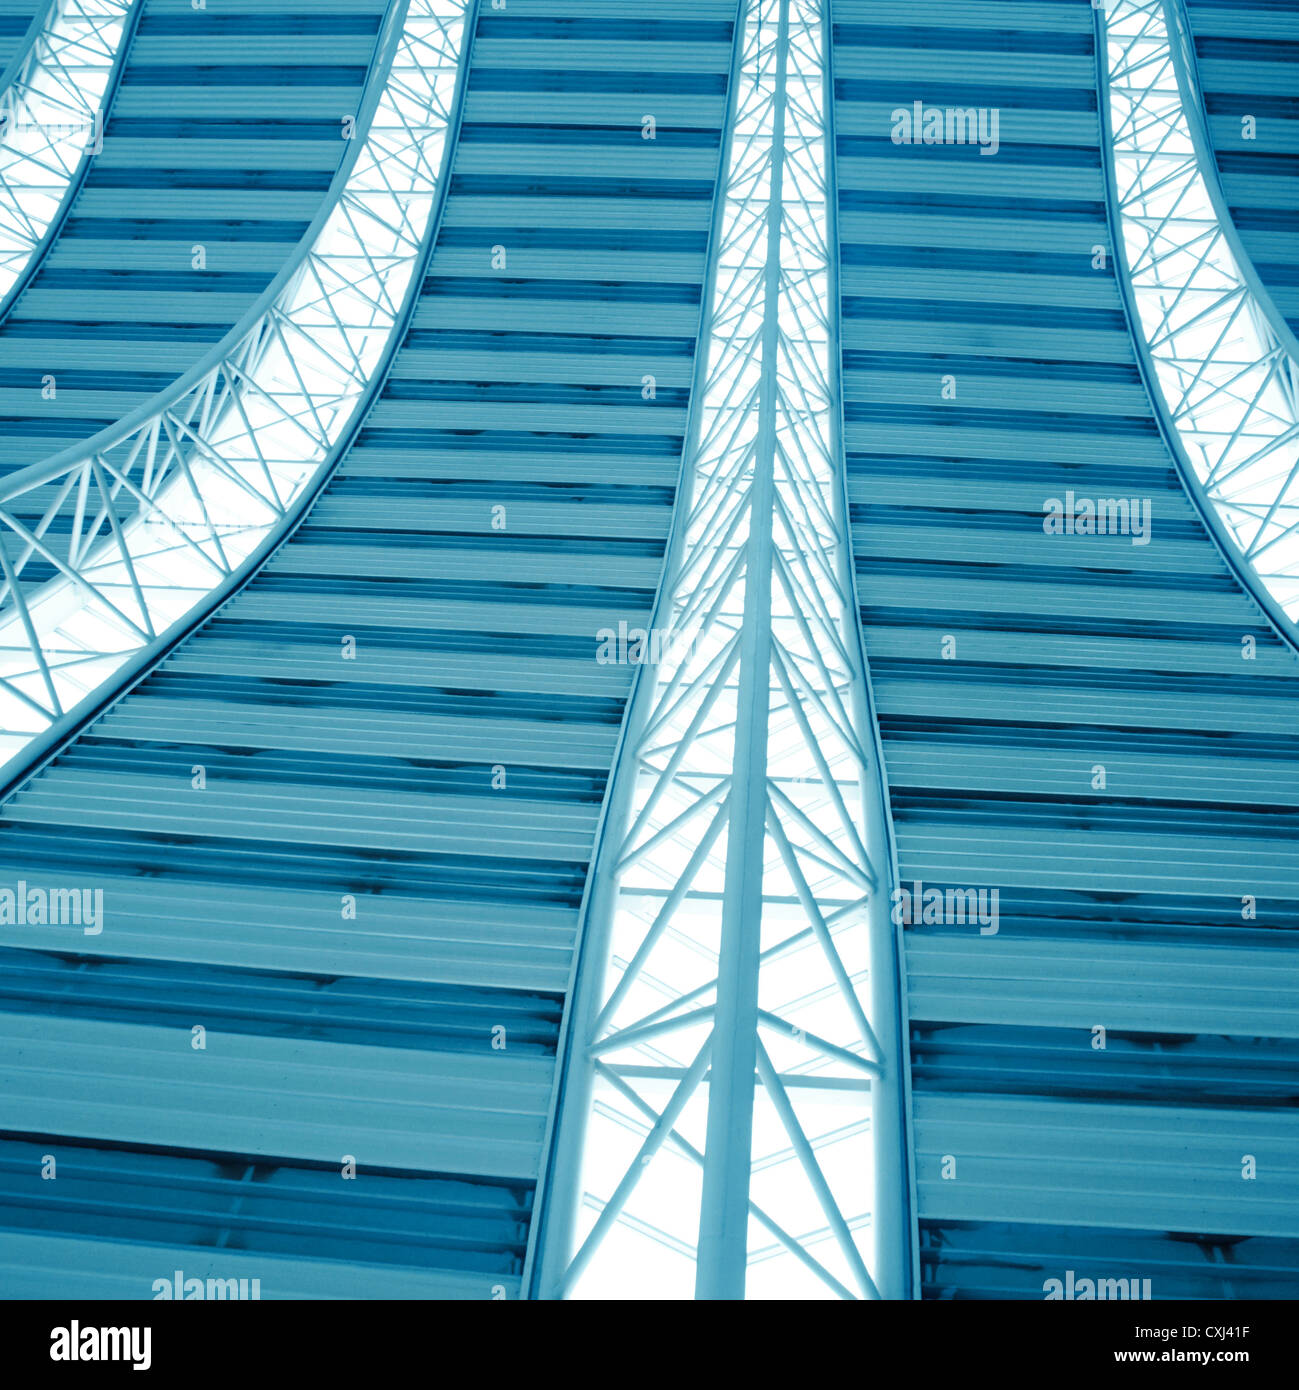 modern city architecture ceiling detail - Stock Image